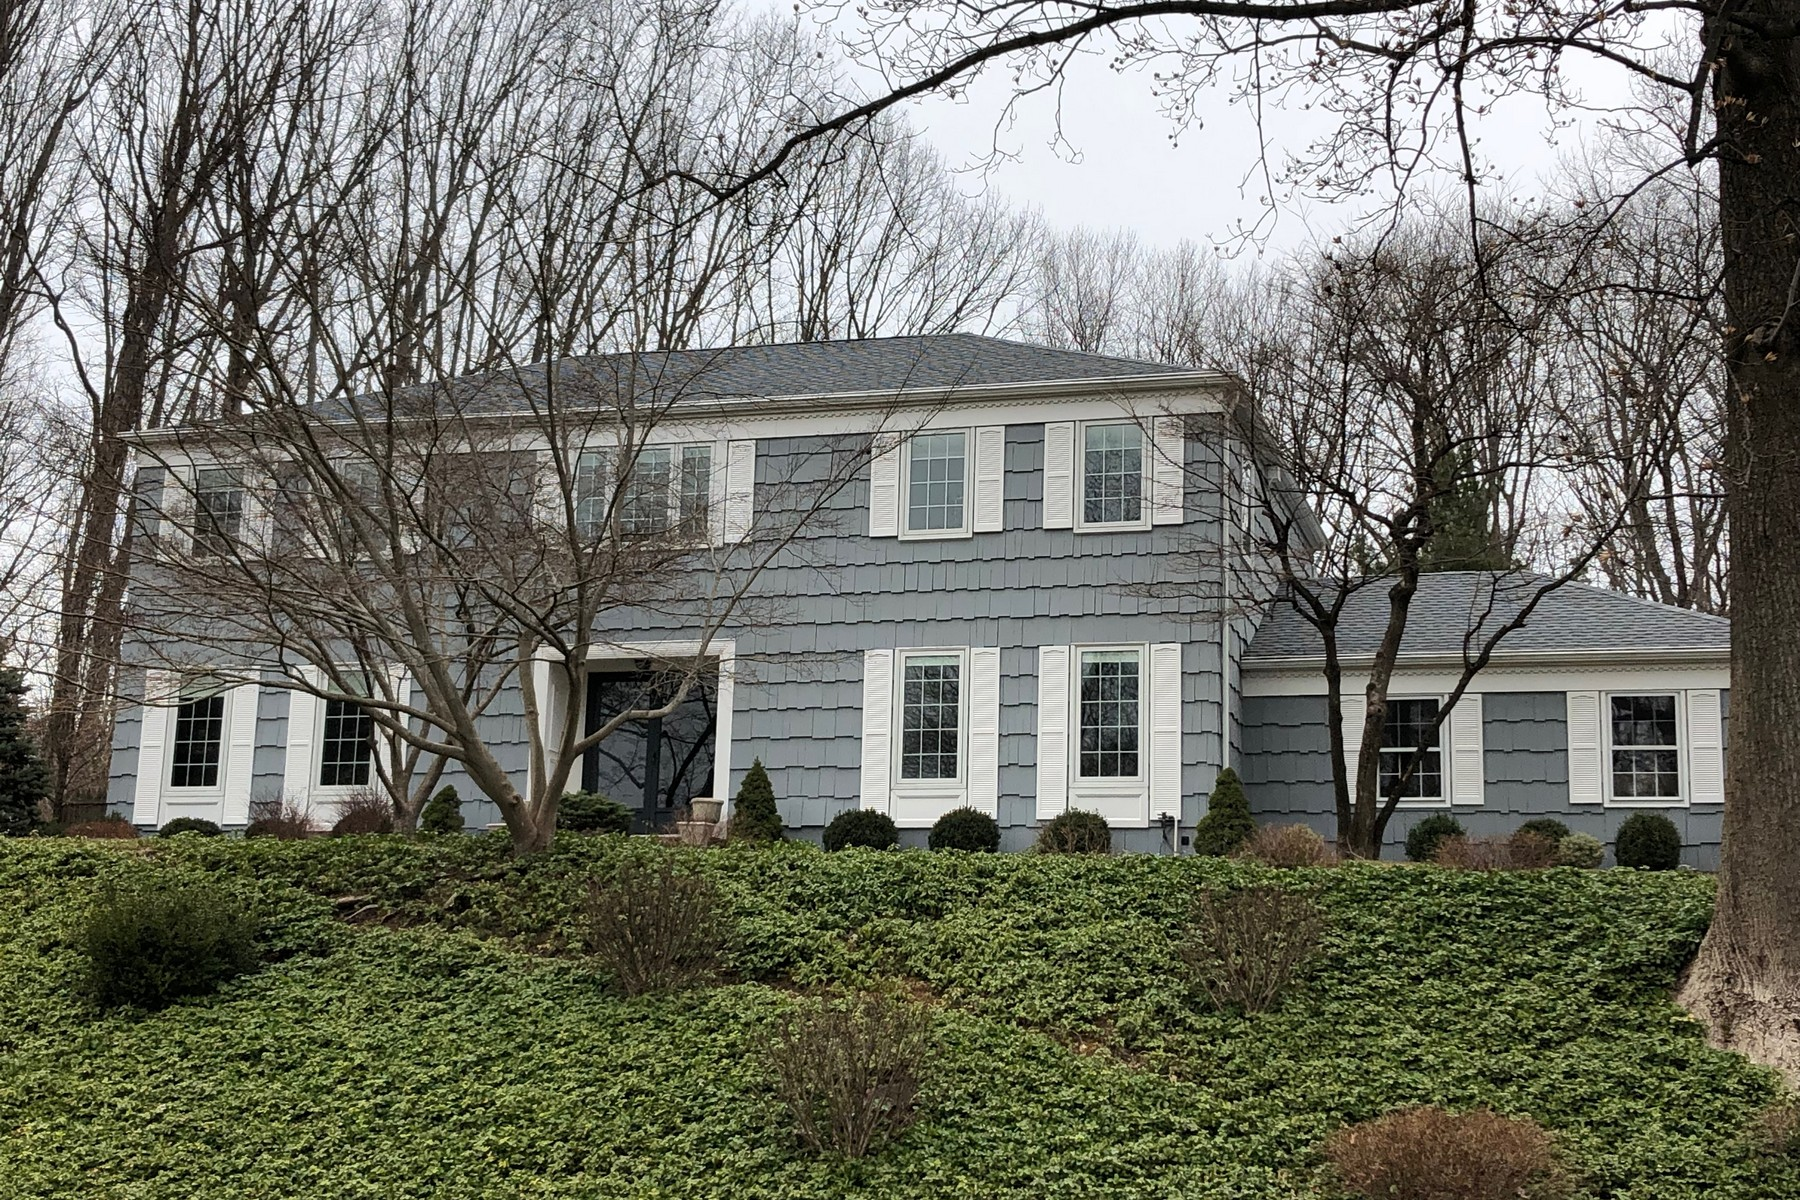 Single Family Home for Sale at LIVE INSPIRED 55 McCutcheon Ct, Middletown, New Jersey 07748 United States